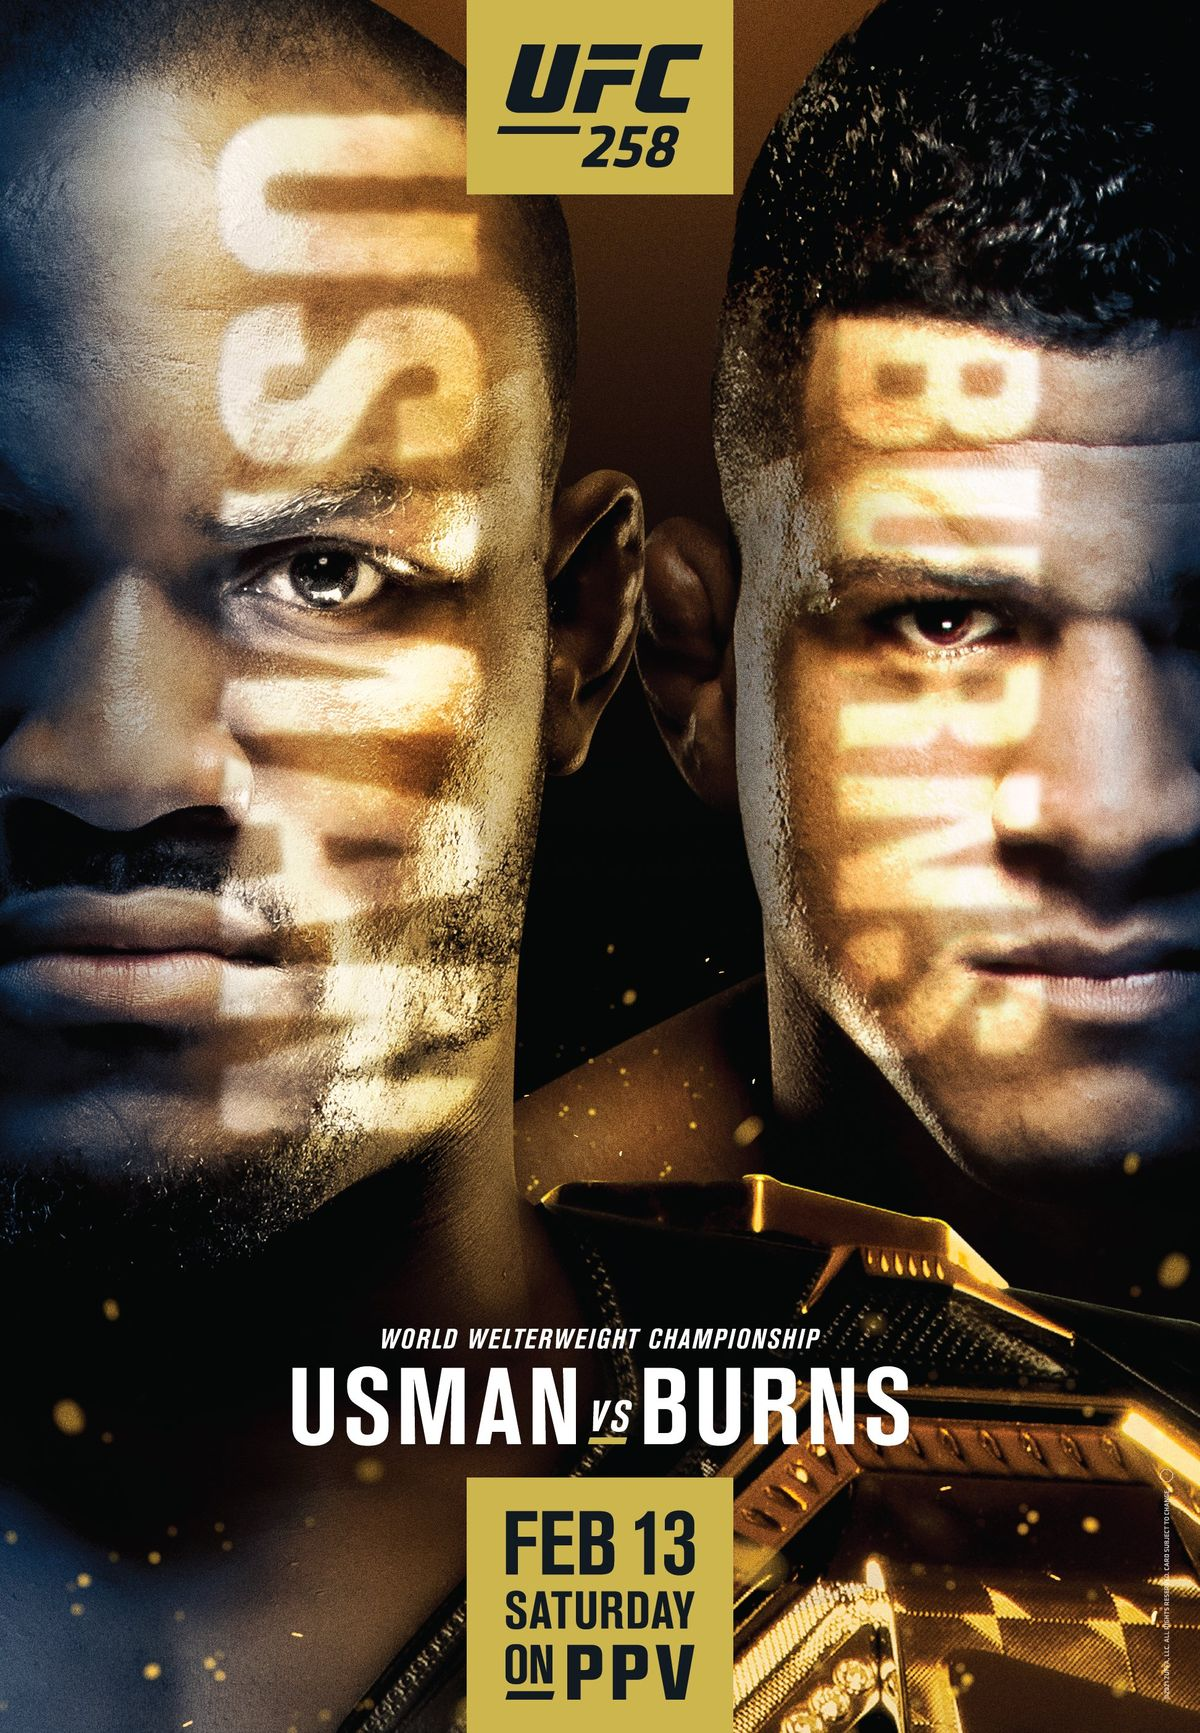 Previewing UFC 258: Usman vs Burns